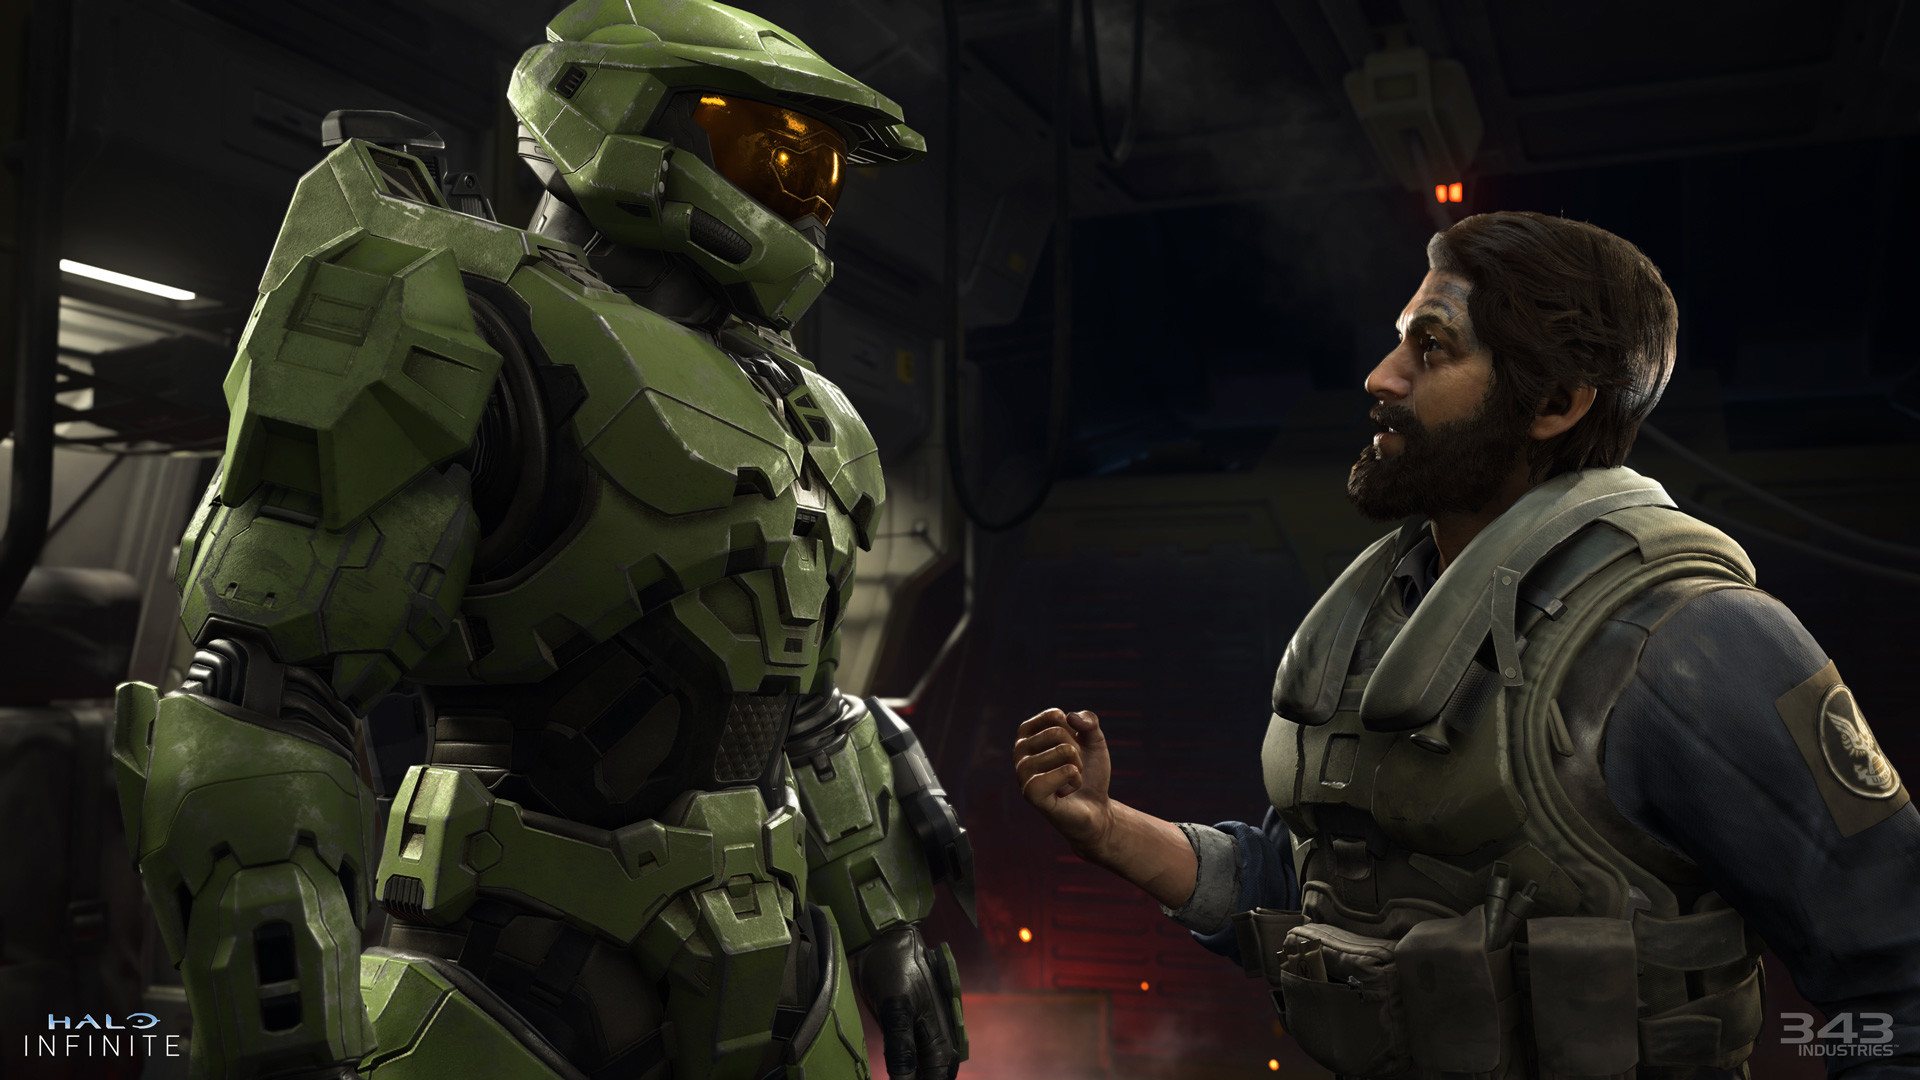 Master Chief and the Pilot character engage in heated conversation.